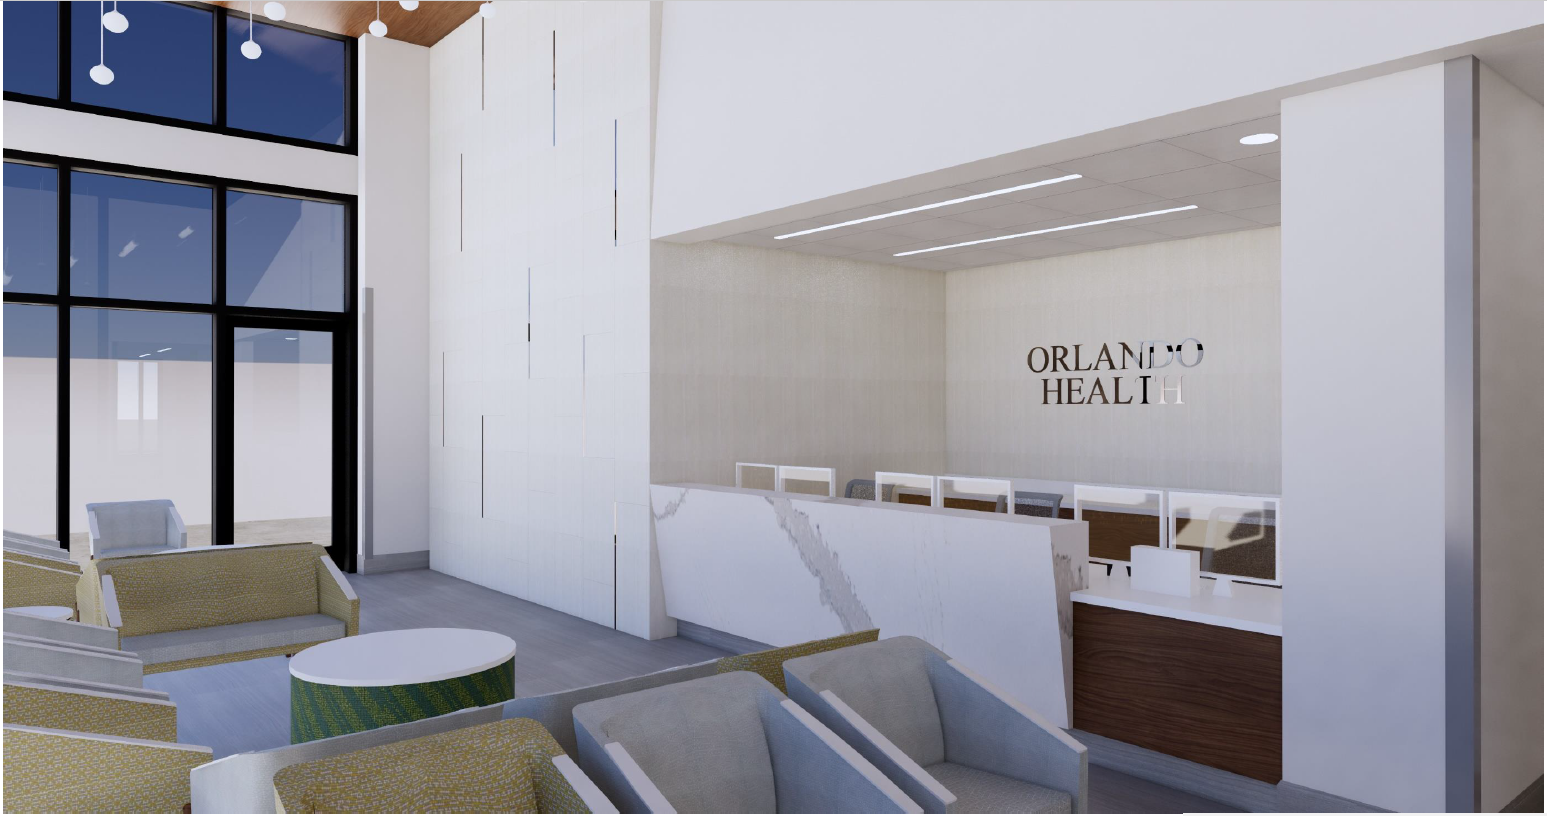 Orlando Health Imaging Center Interior Rendering